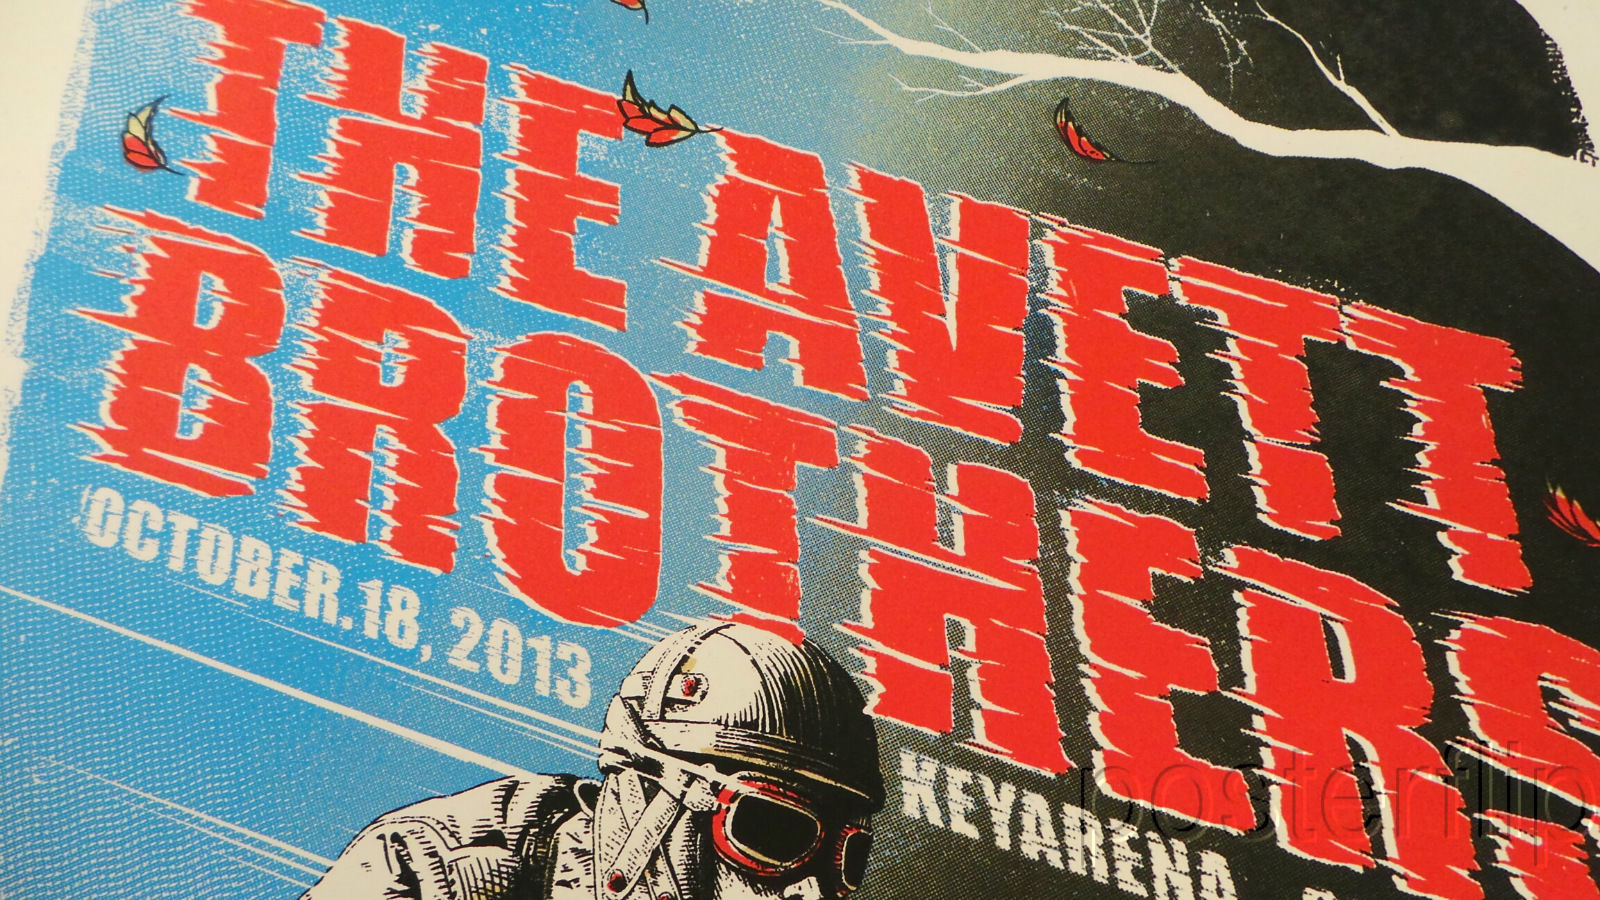 Avett Brothers Seattle 2013 Screenprint Poster Zeb Love xx/200 Signed/Numbered